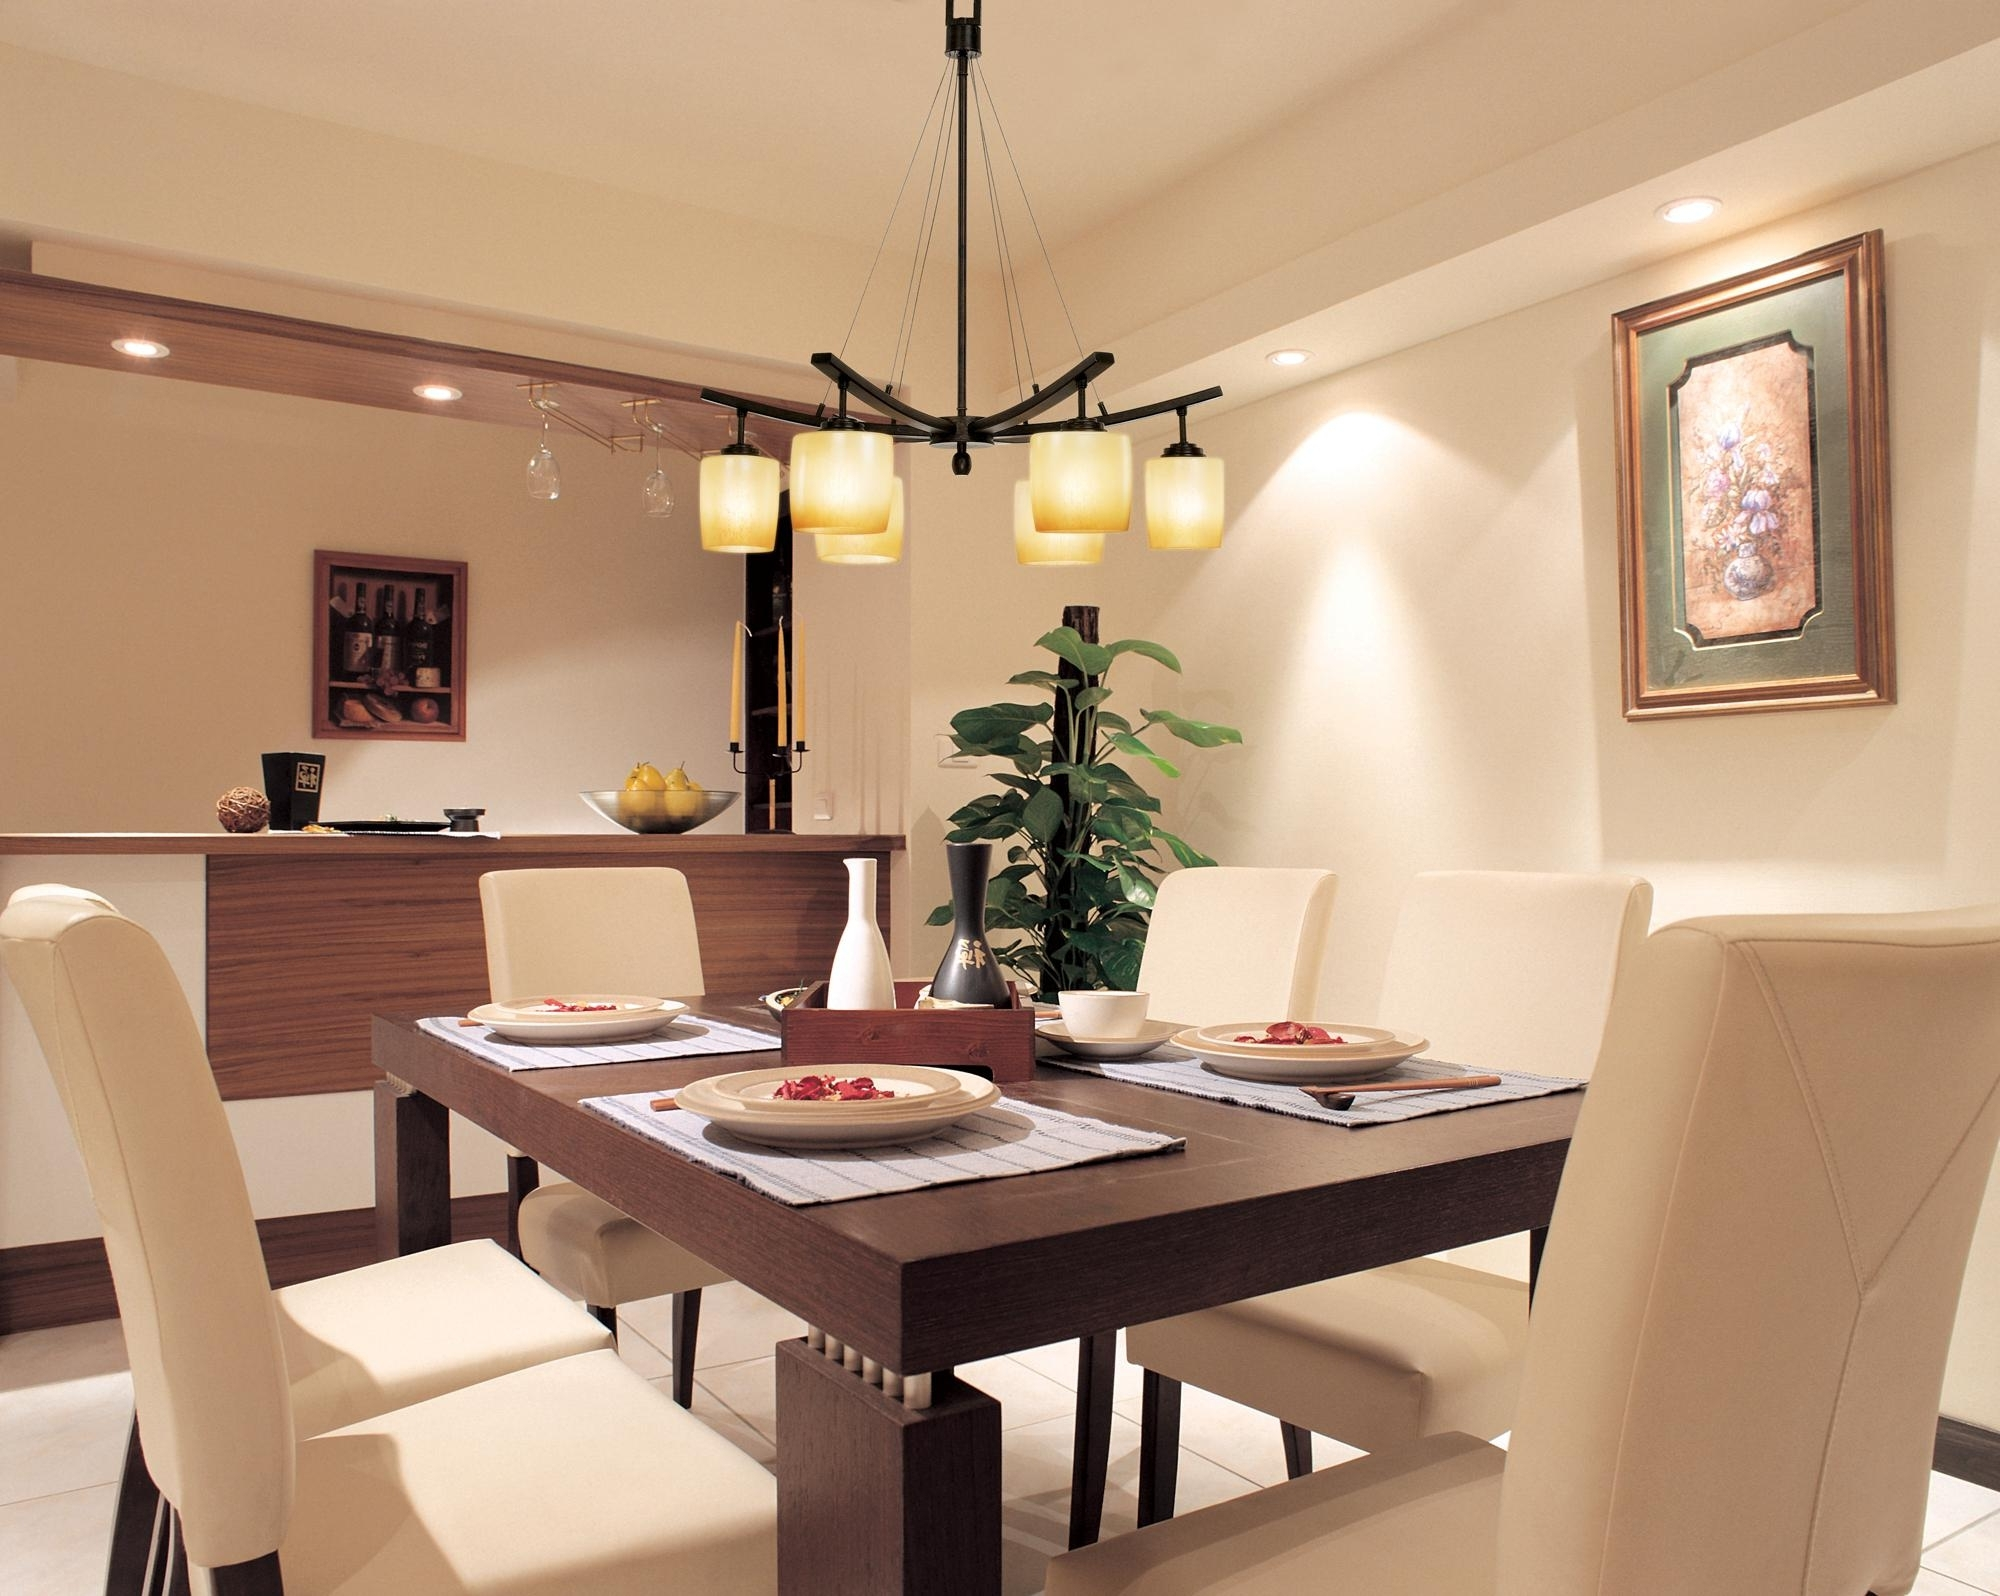 Over Dining Tables Lighting Within Latest Dining Room Living Room And Dining Room Lighting Dining Table (View 4 of 25)